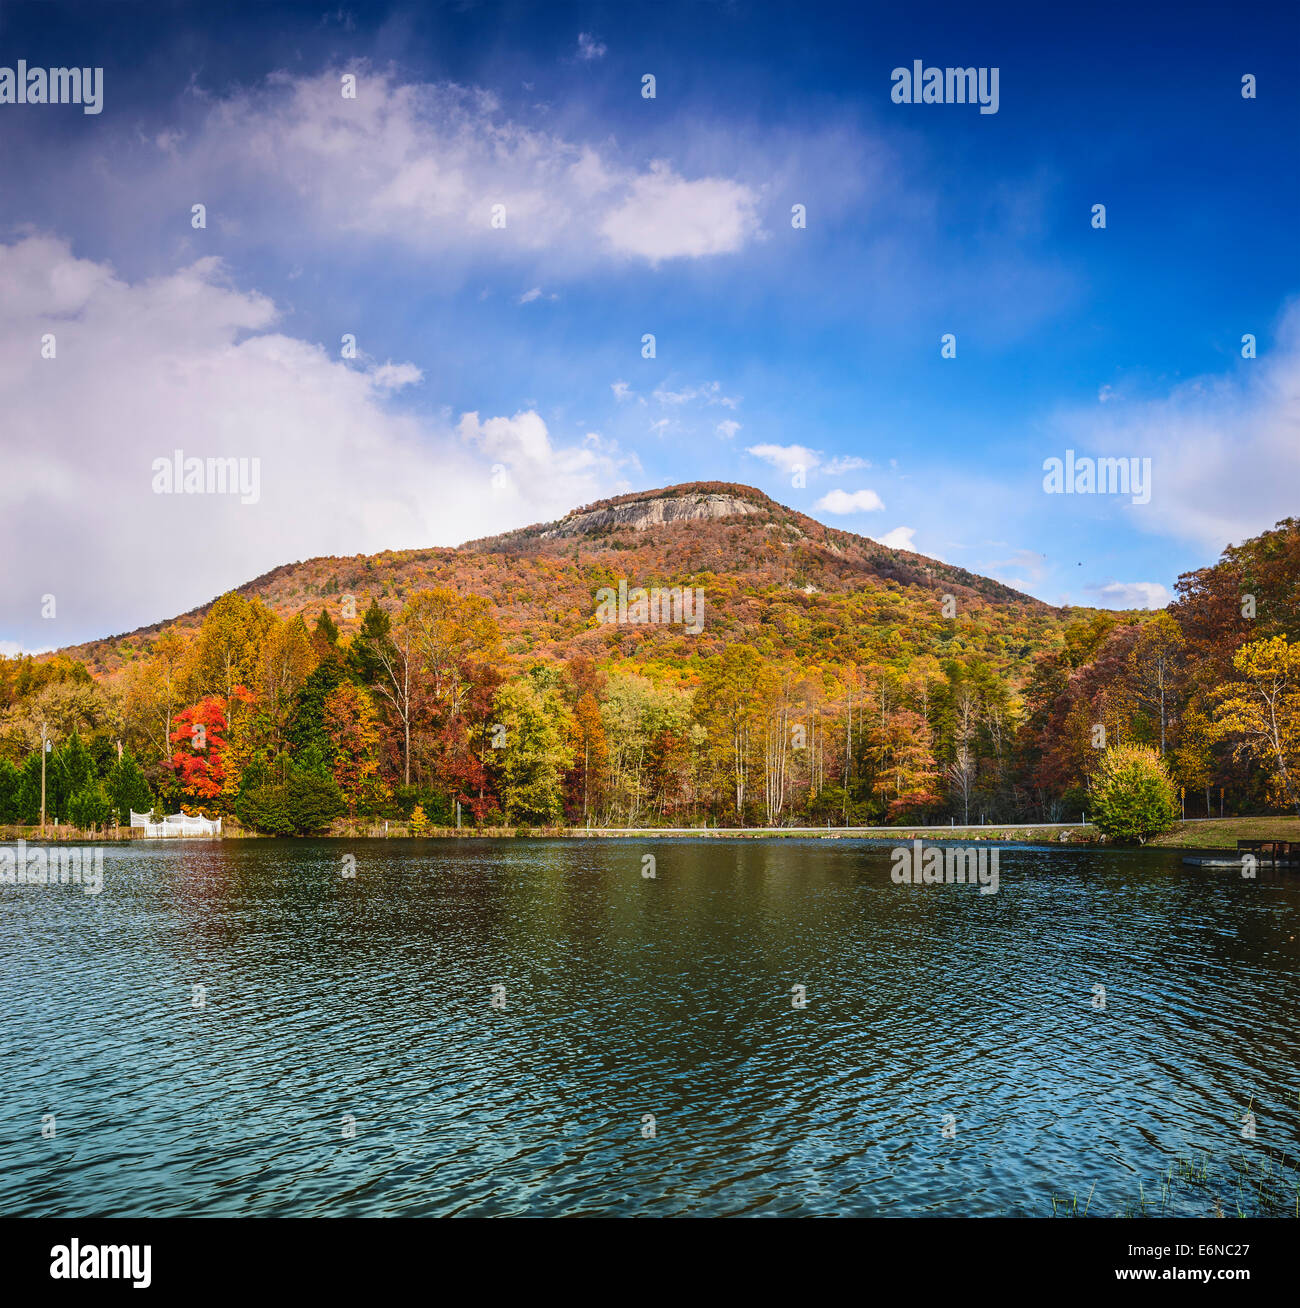 Yonah Mountain in north Georgia, USA. - Stock Image